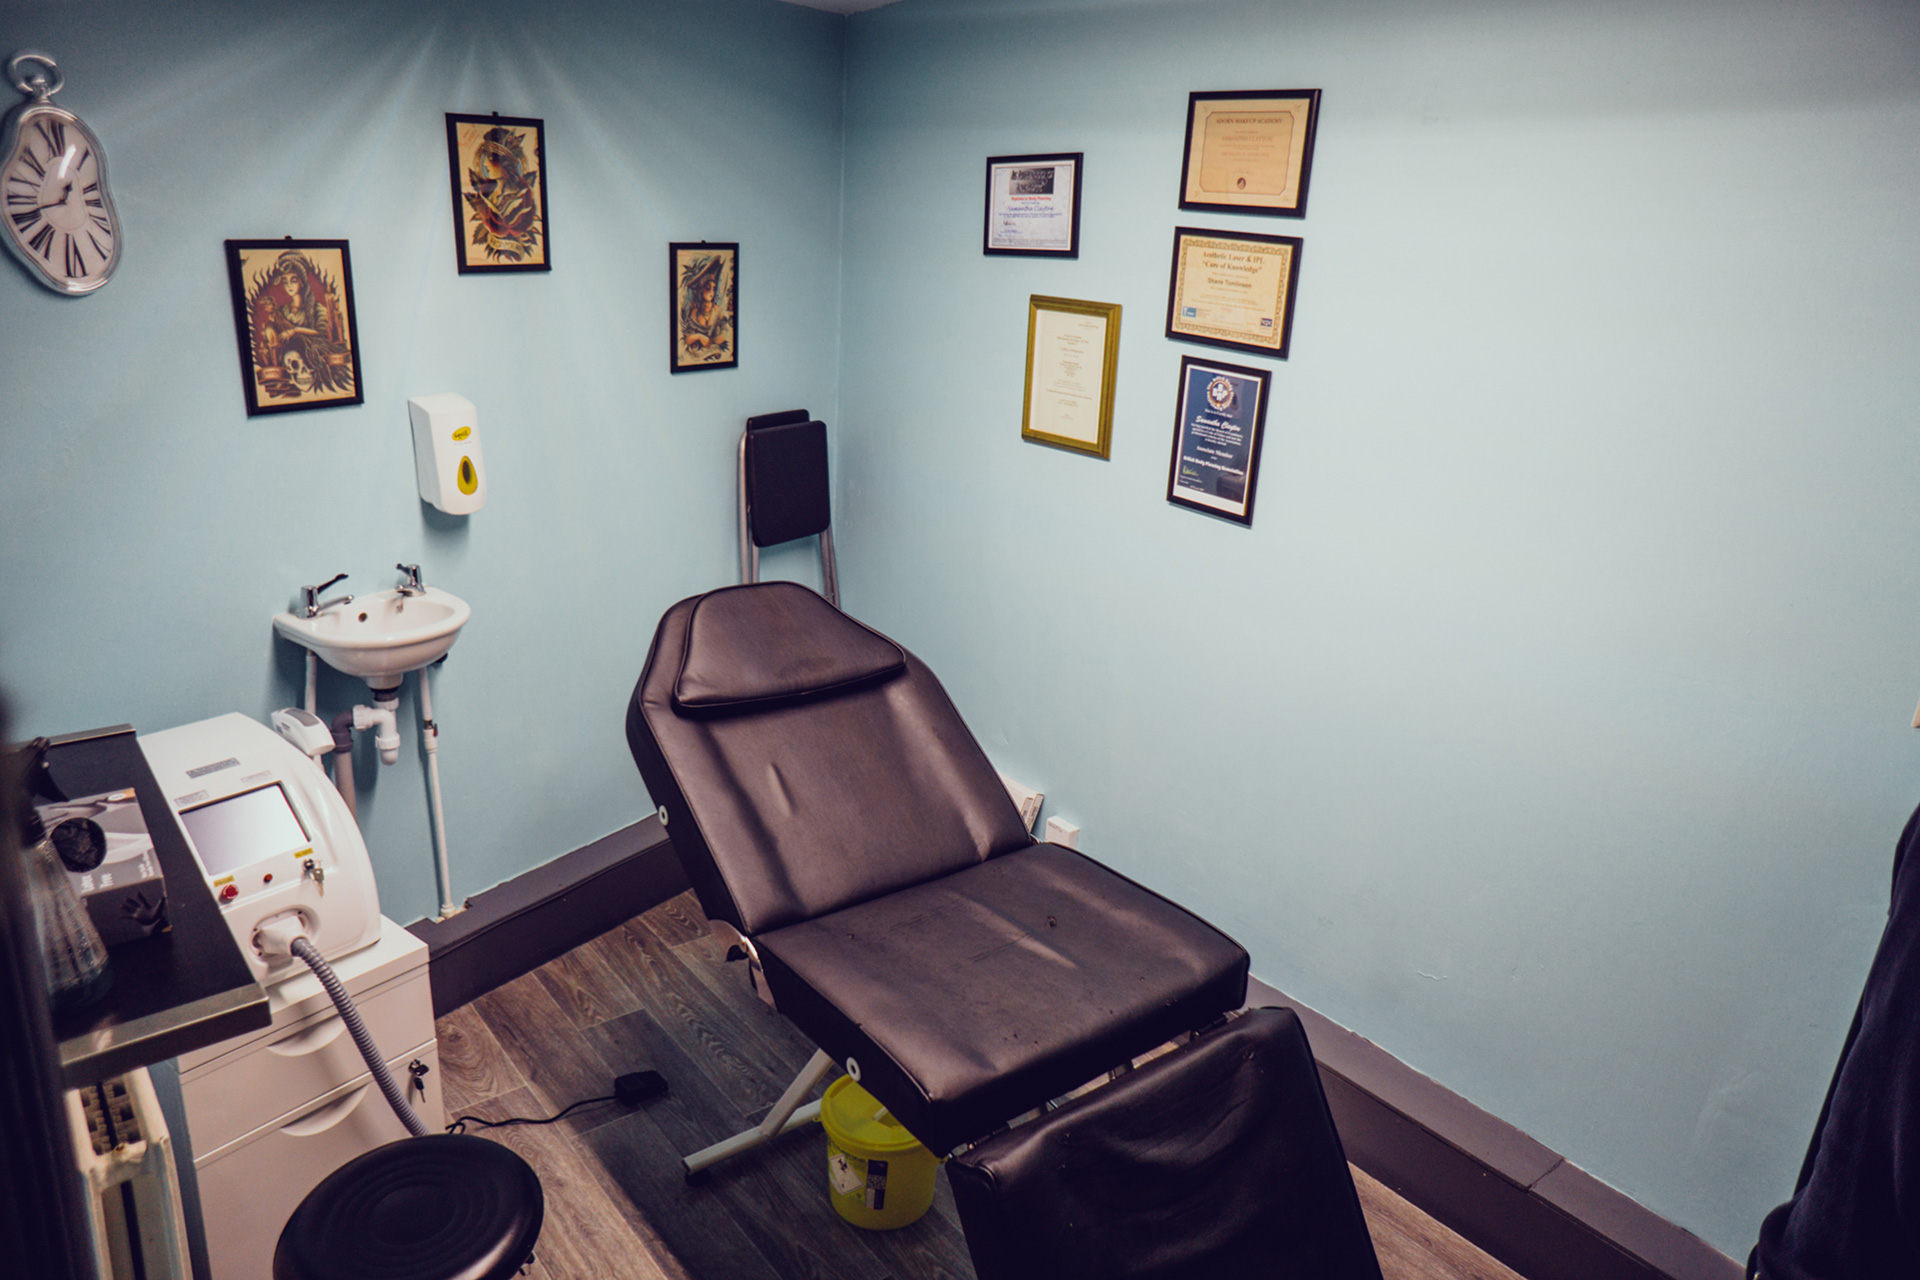 LASER TREATMENTS - Here at Panther Crew we offer a range of professional laser services, using modern equipment to remove unwanted tattoo's or rejuvenate your skin with Carbon Facial.get in touch here, or swing by to see what we can do for you.Panther Crew Team -